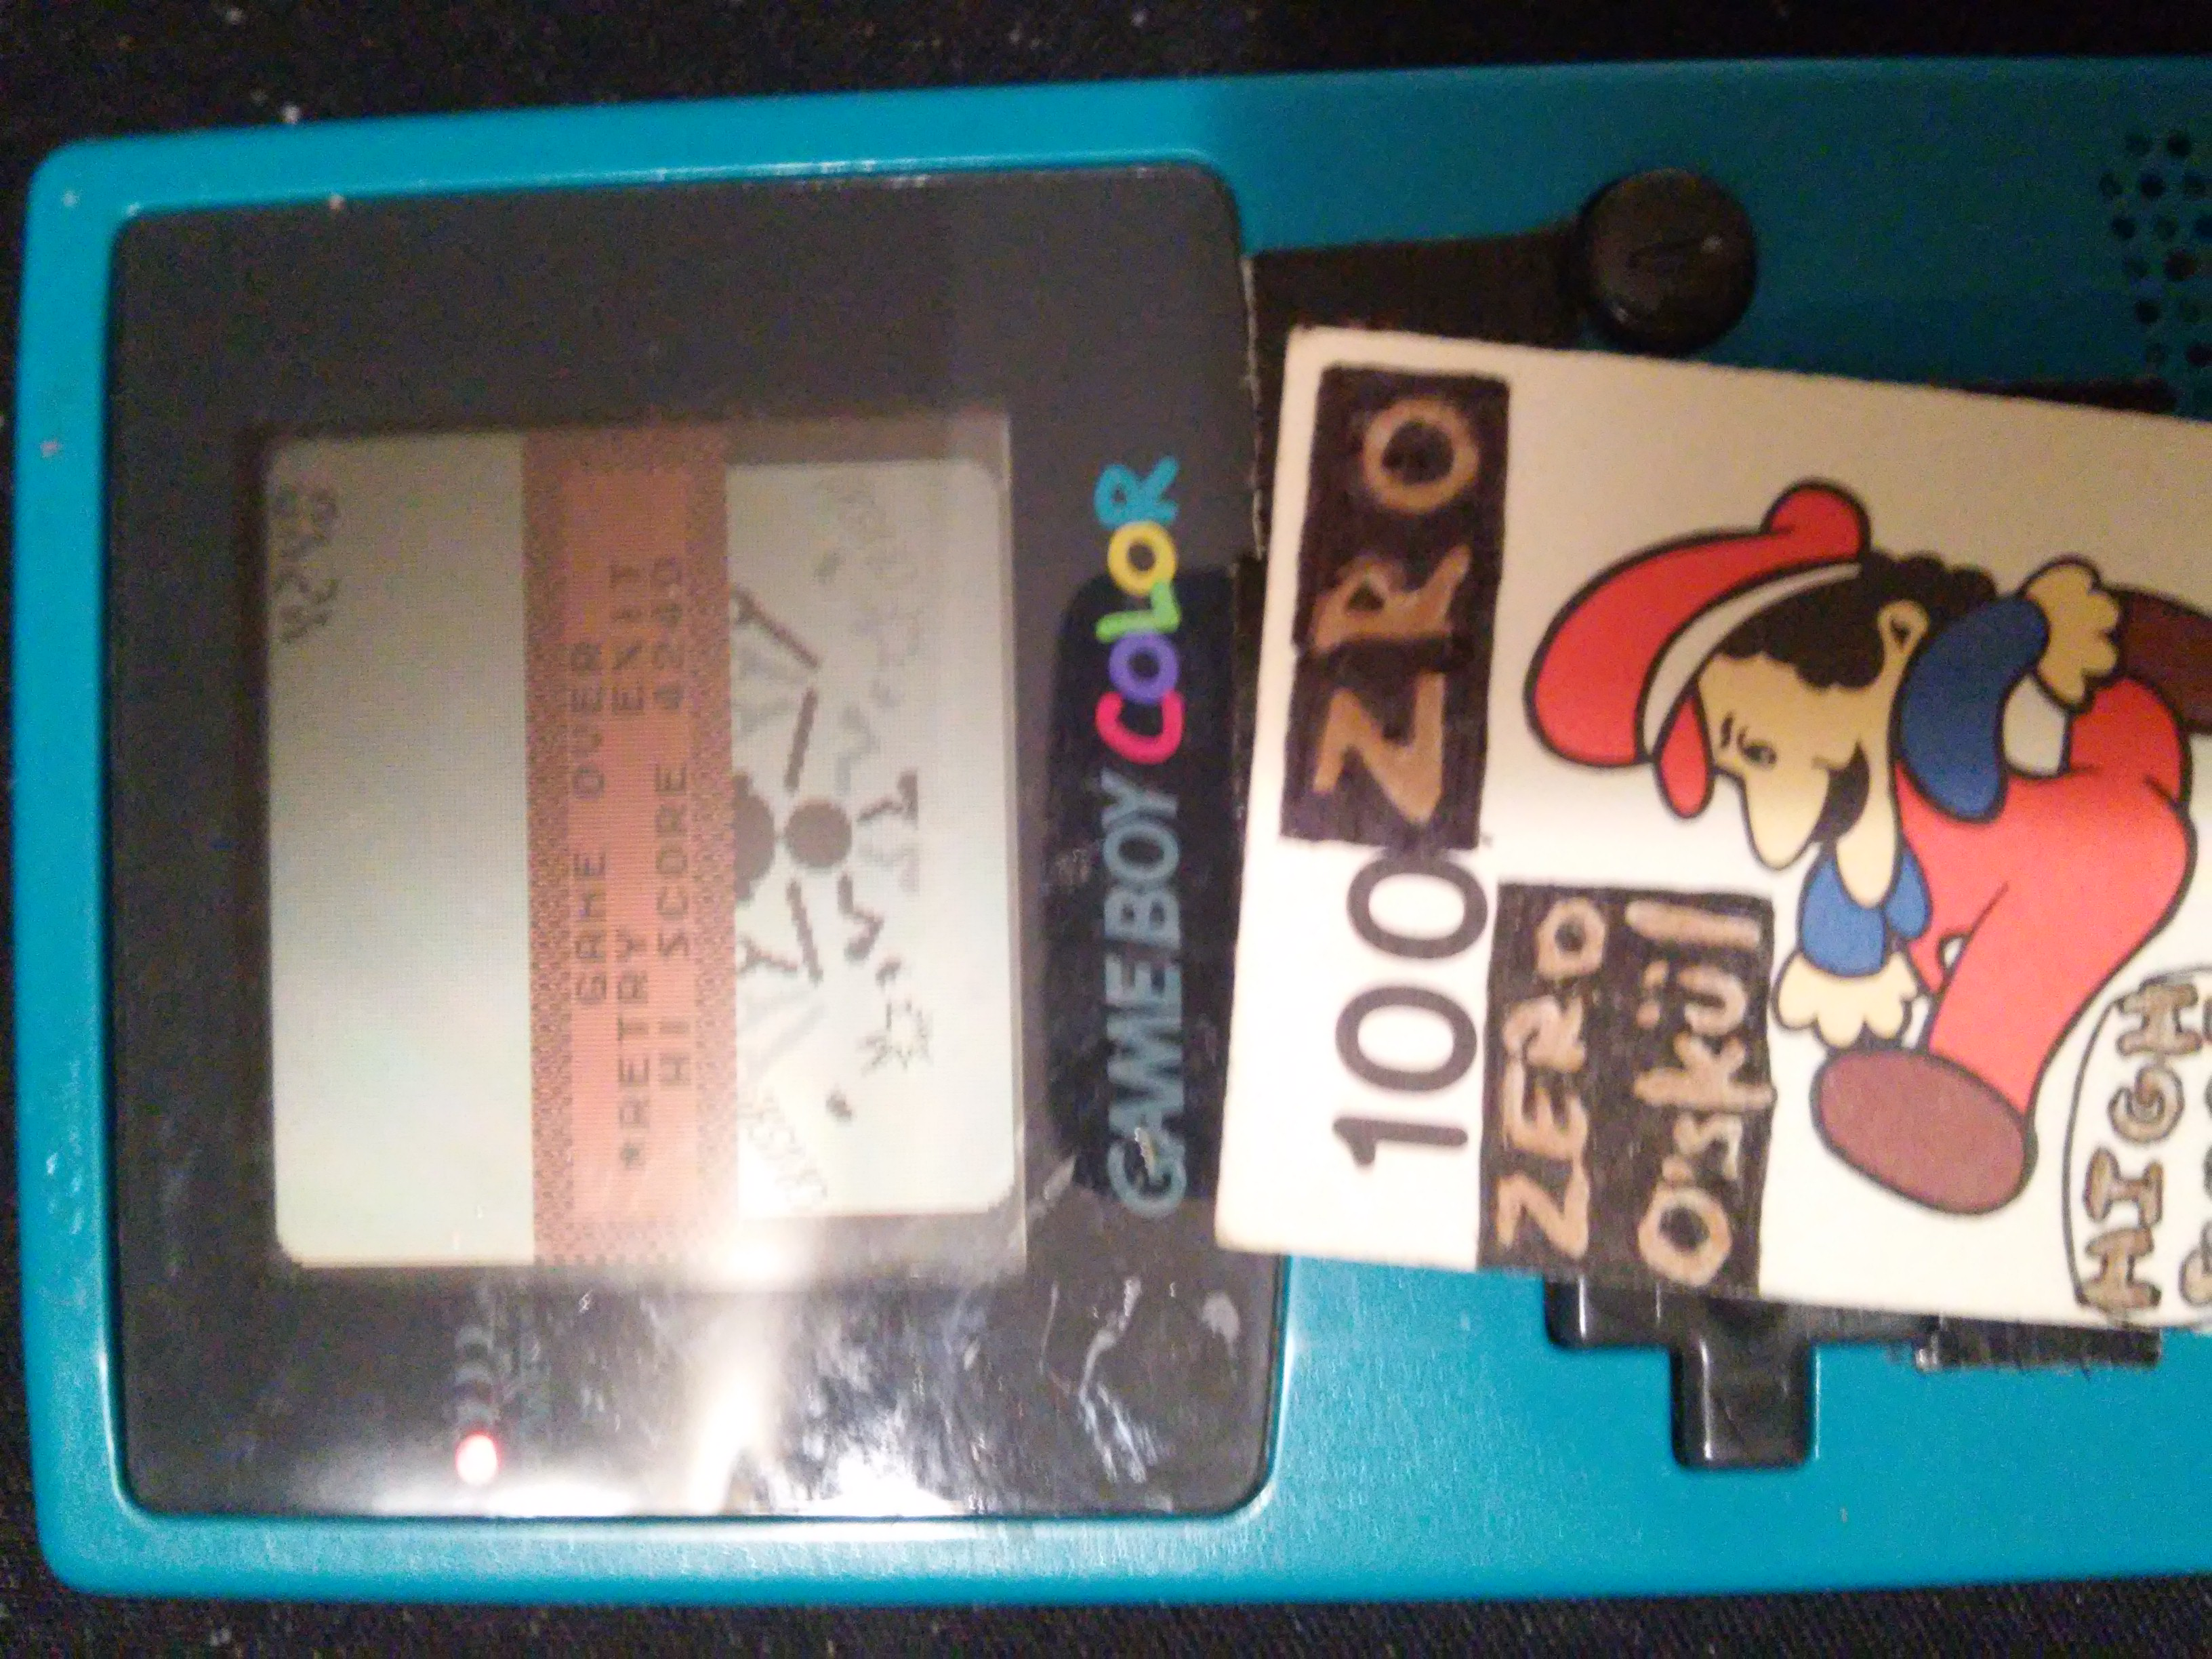 Game & Watch Gallery 2: Ball [Classic: Hard] 4,240 points